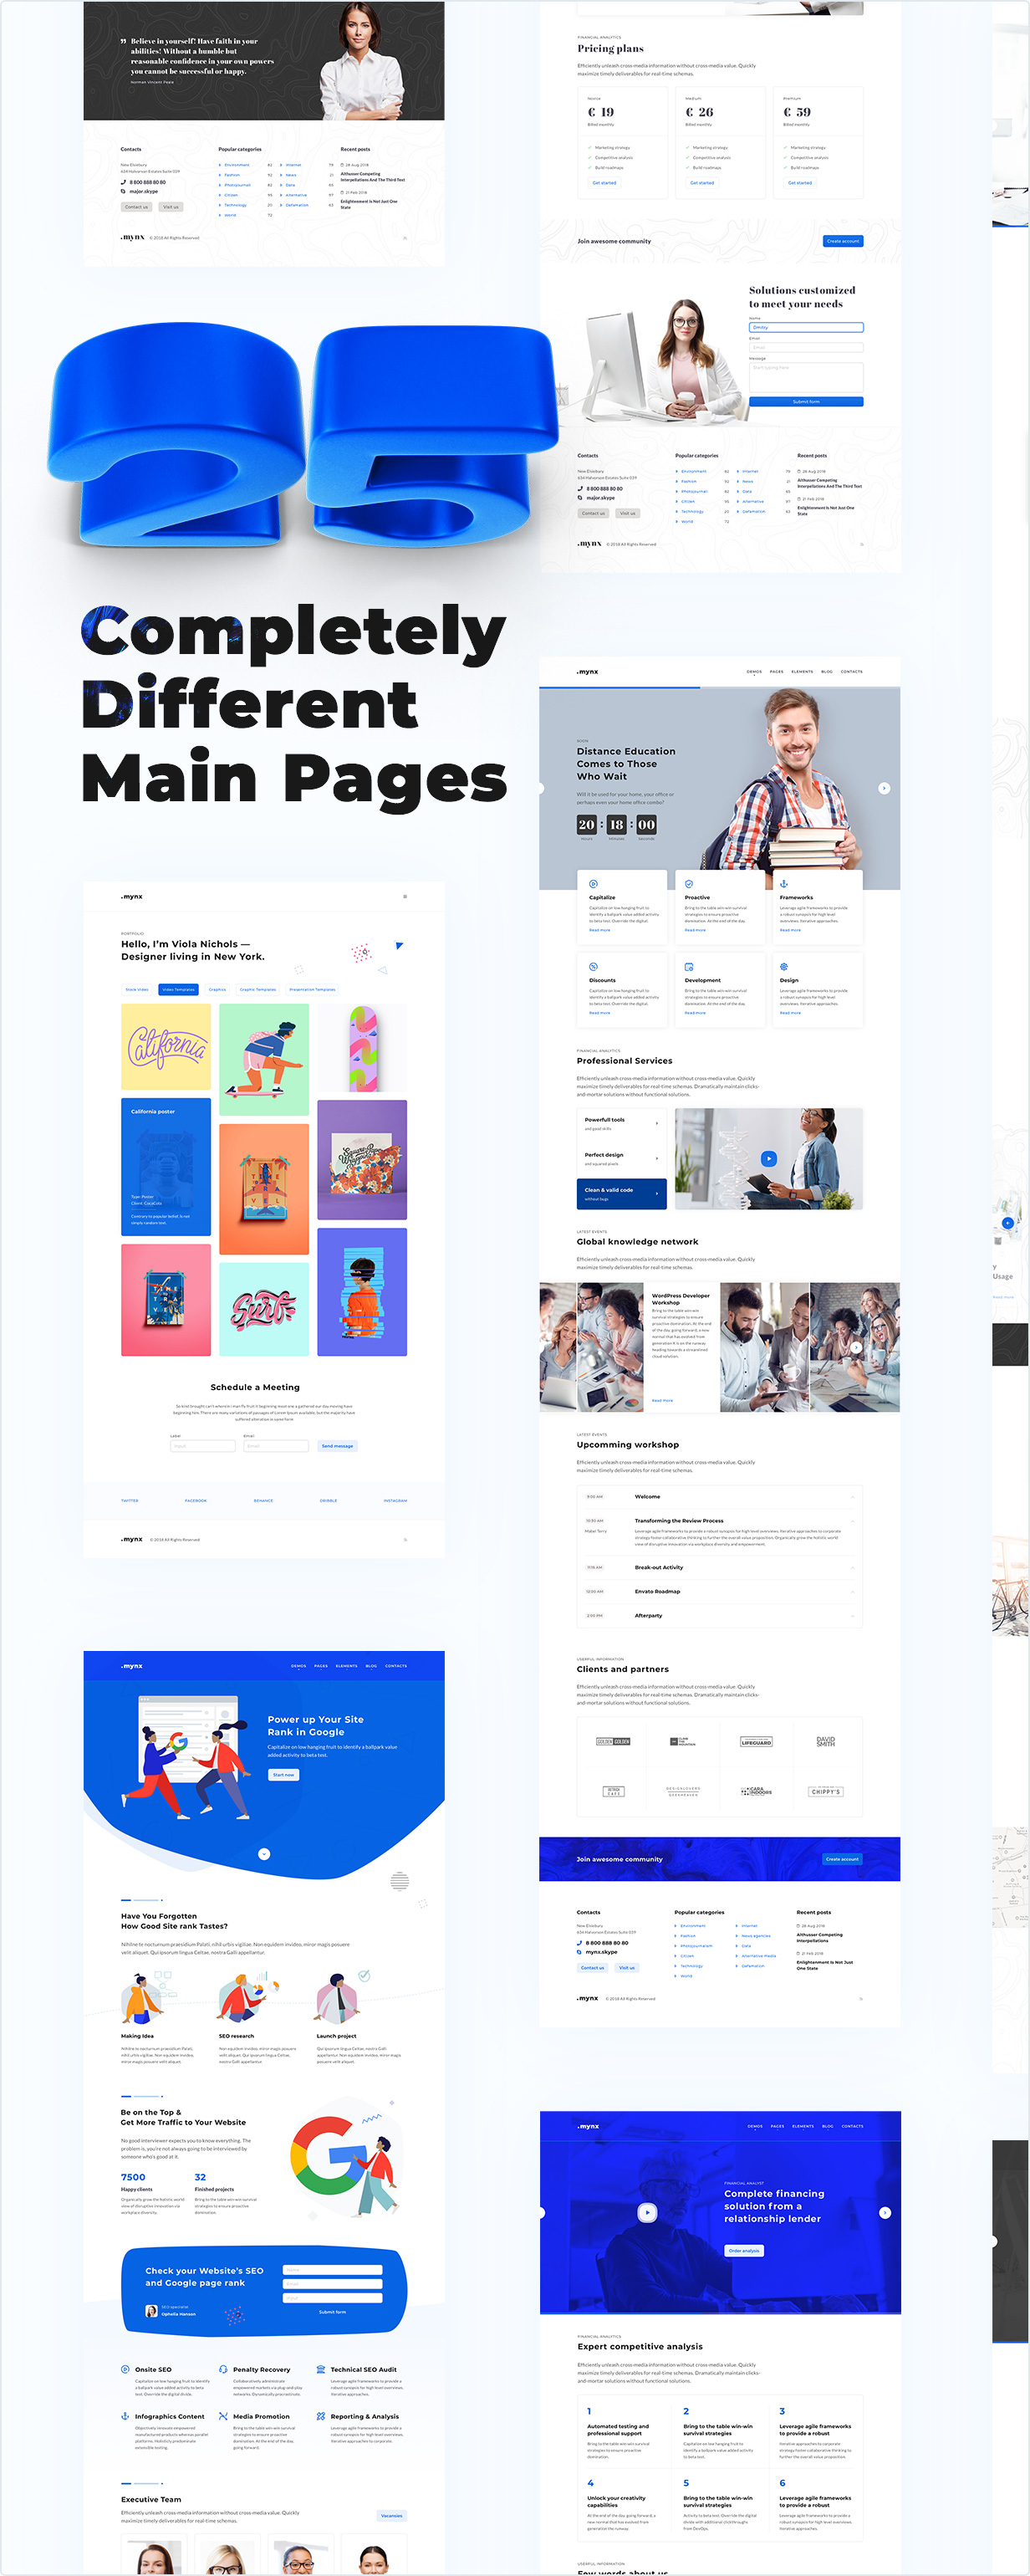 Seven Completely Different Main Pages